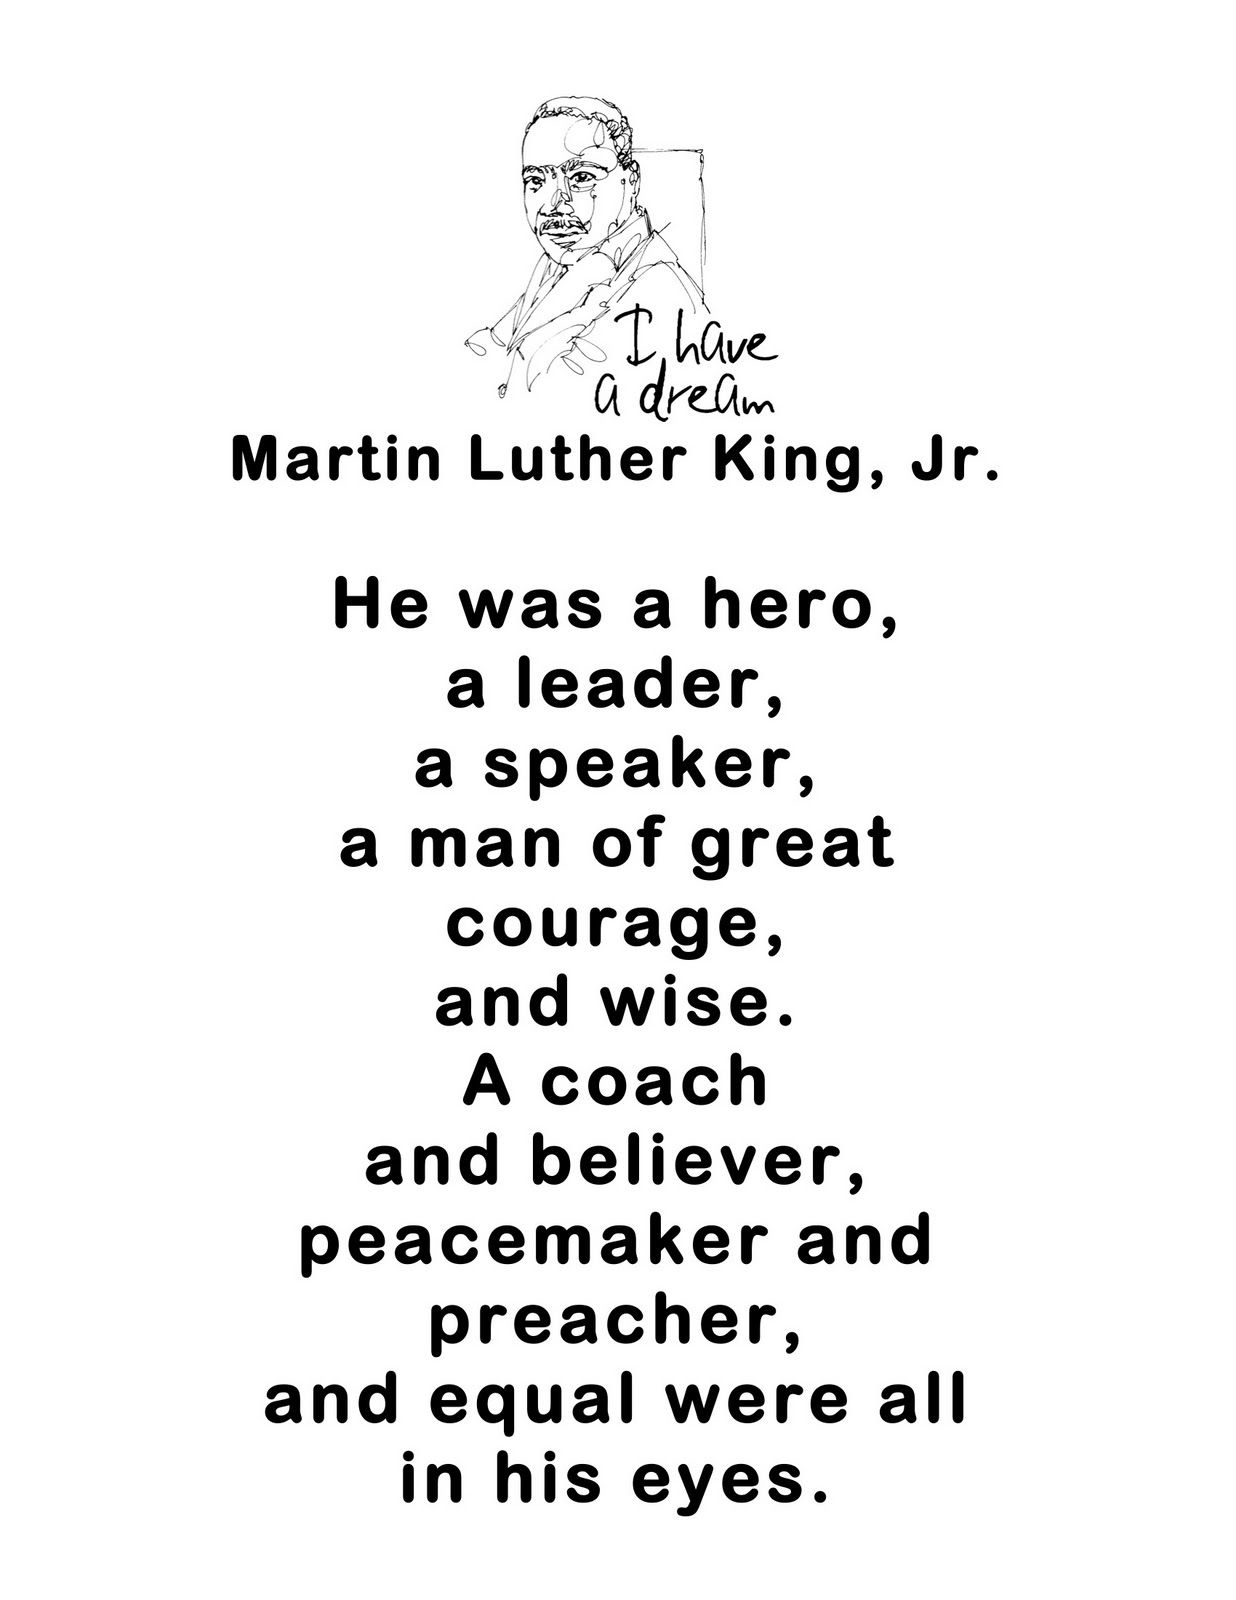 Coloring pictures martin luther king jr - Just 4 Teachers Sharing Across Borders Martin Luther King Jr Poem And